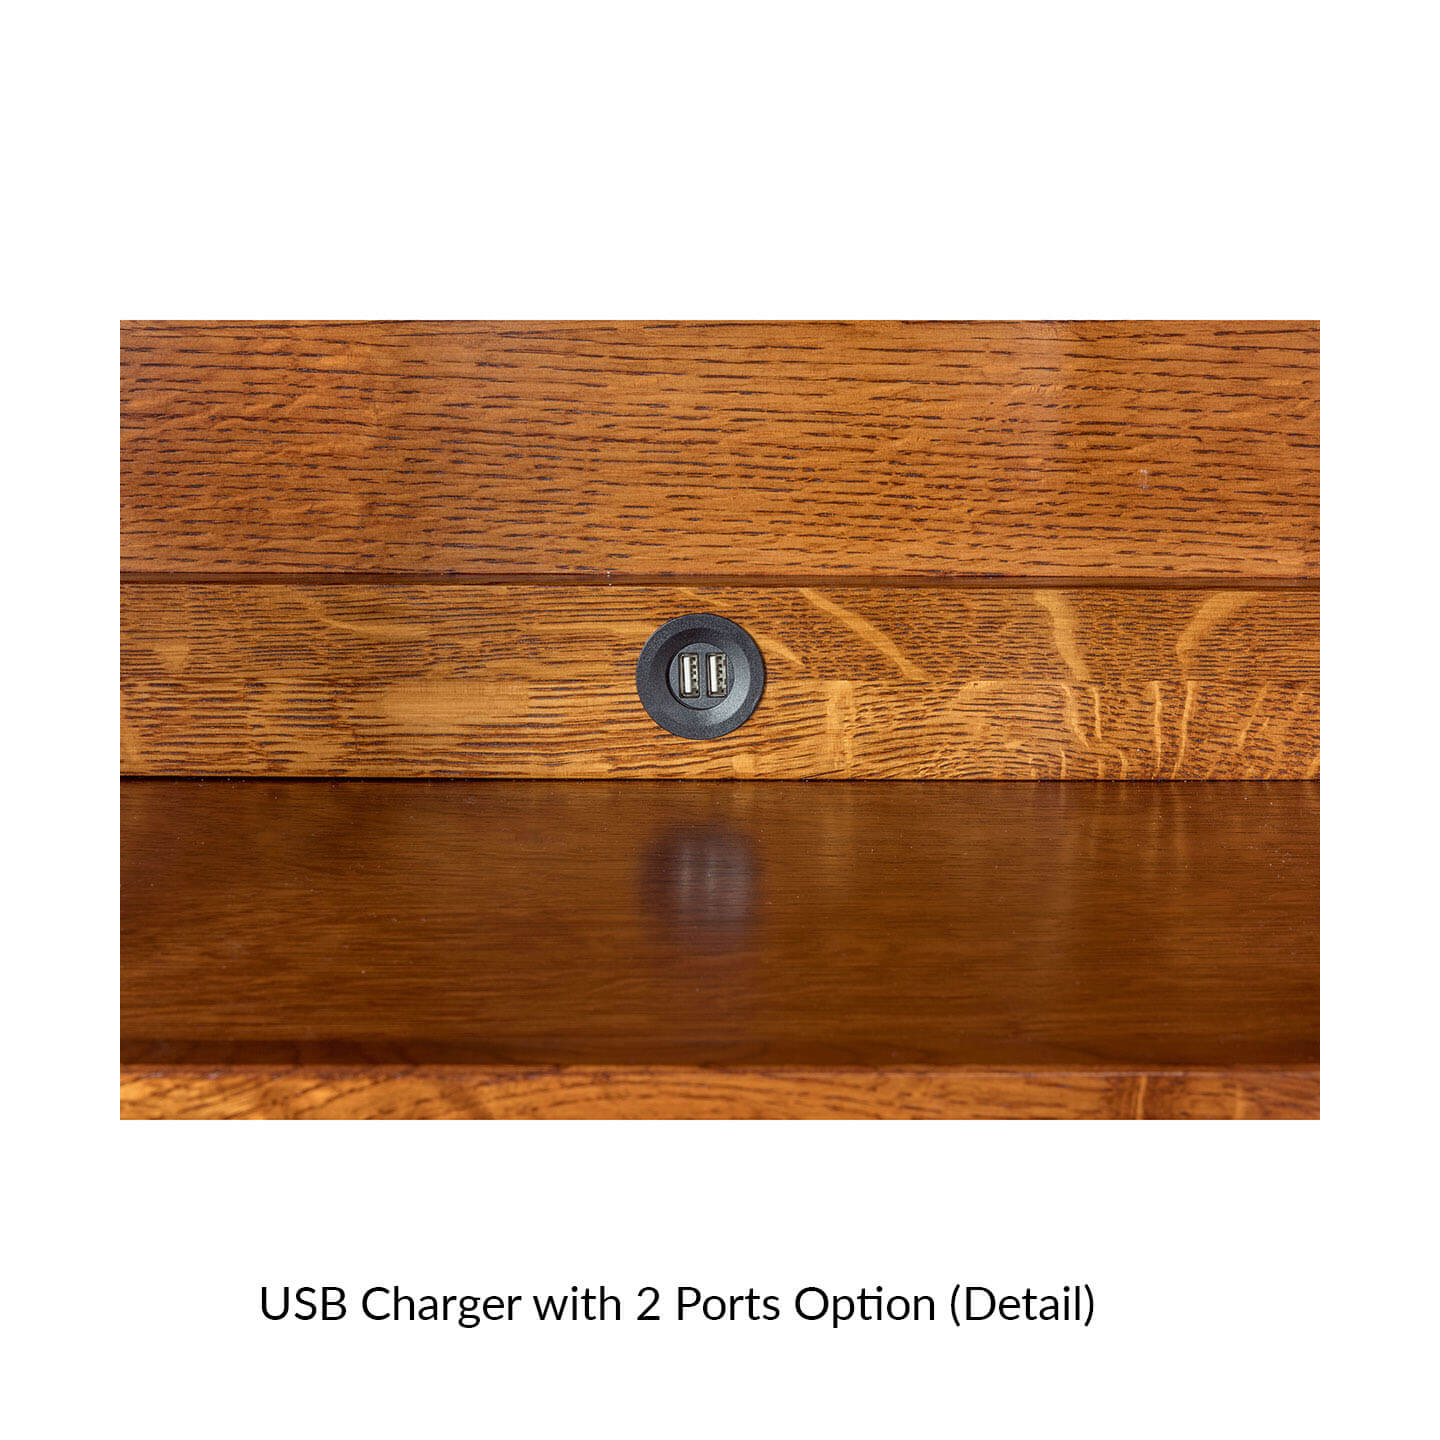 7.0-usb-charger-with-2-ports-option-detail-.jpg